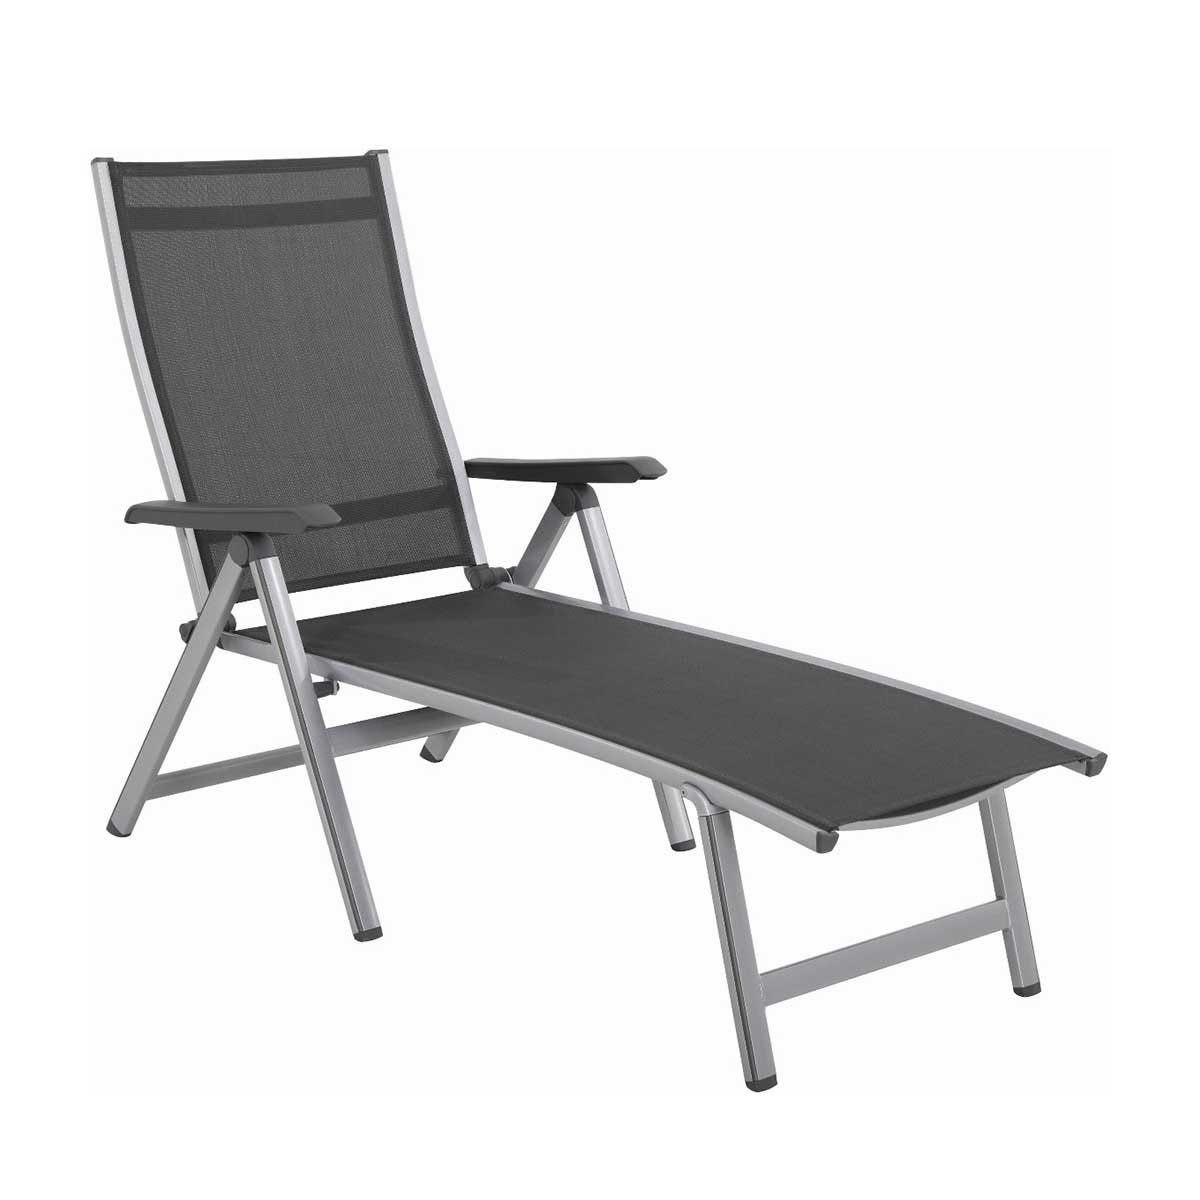 MWH Elements Lounger - Silver